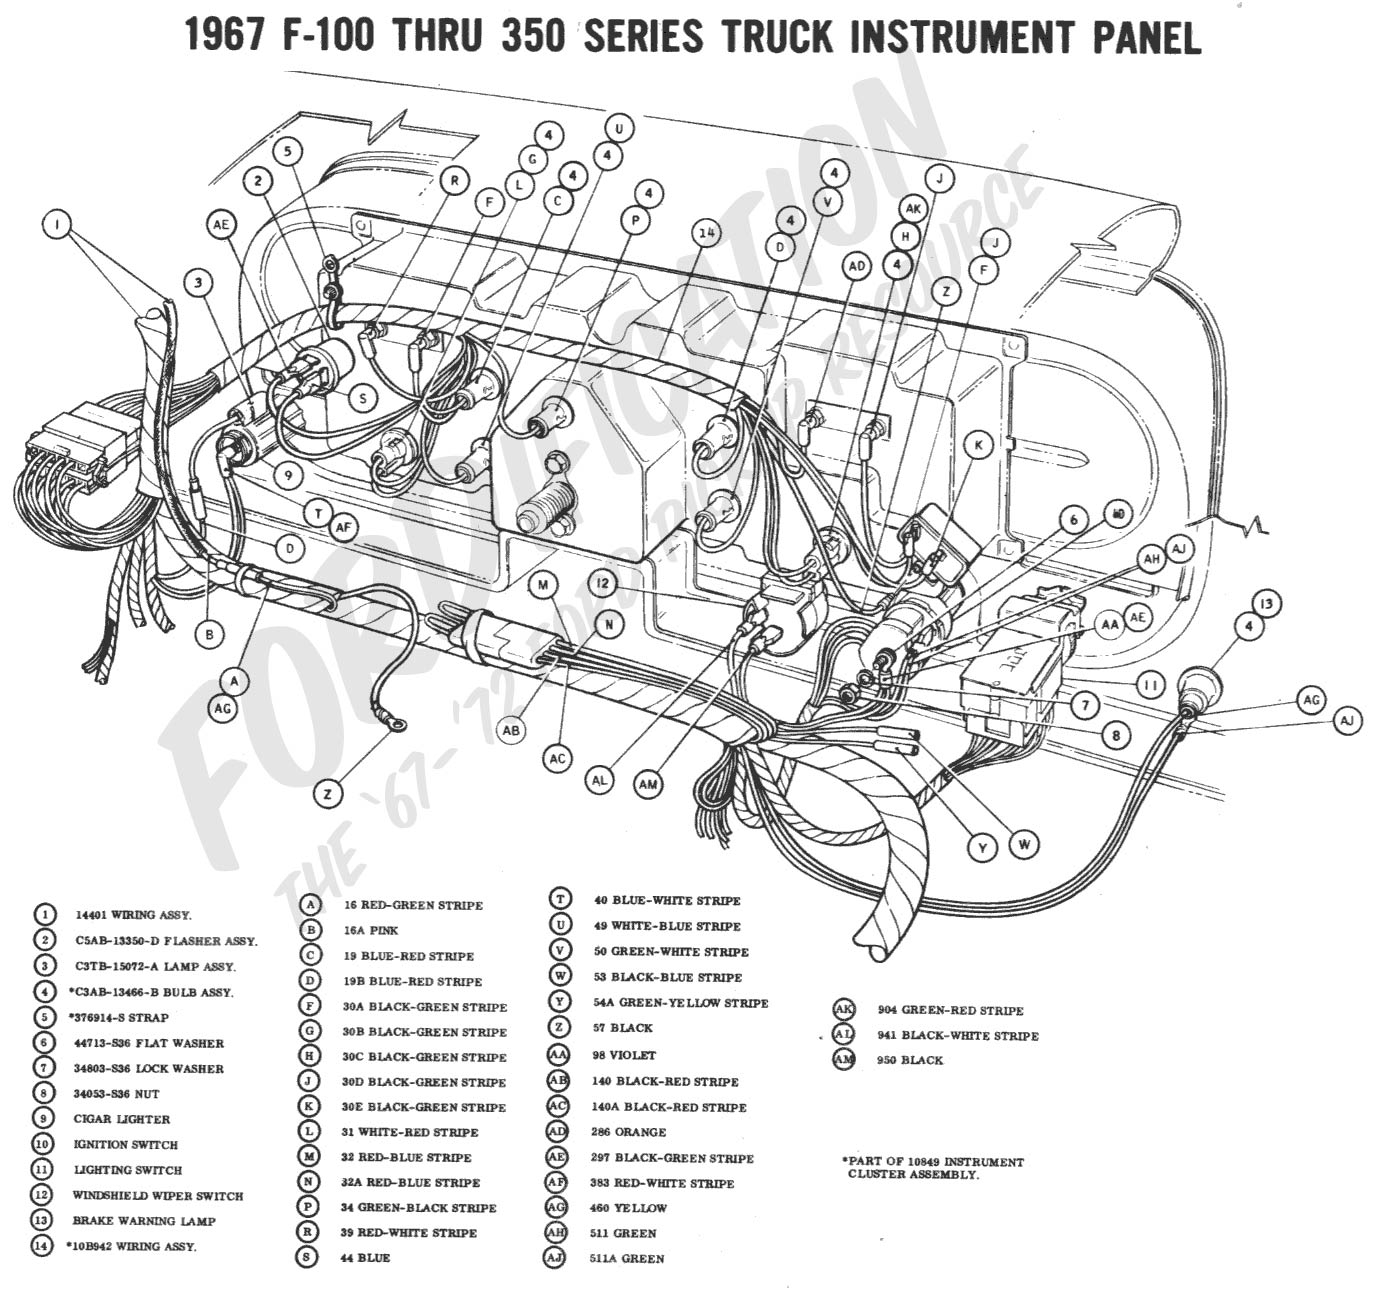 Ford truck technical drawings and schematics section h wiring 1967 f 100 thru f 350 instrument panel 1967 master wiring diagram asfbconference2016 Gallery